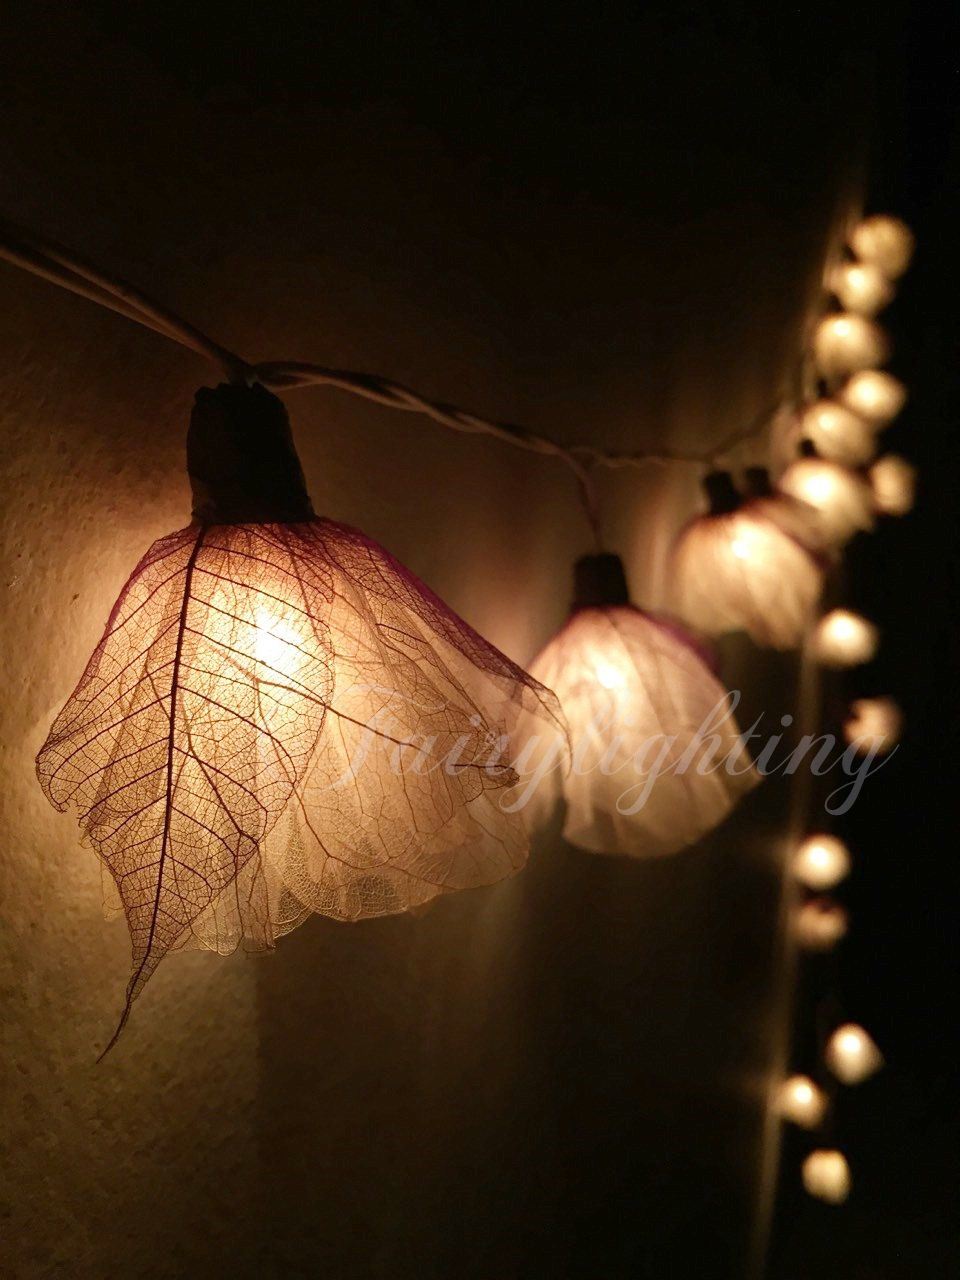 Pin by brizled on flowers light string pinterest light string fairy lights 20 white carnation flower string lights wedding party home decorationindoor string lights mightylinksfo Image collections